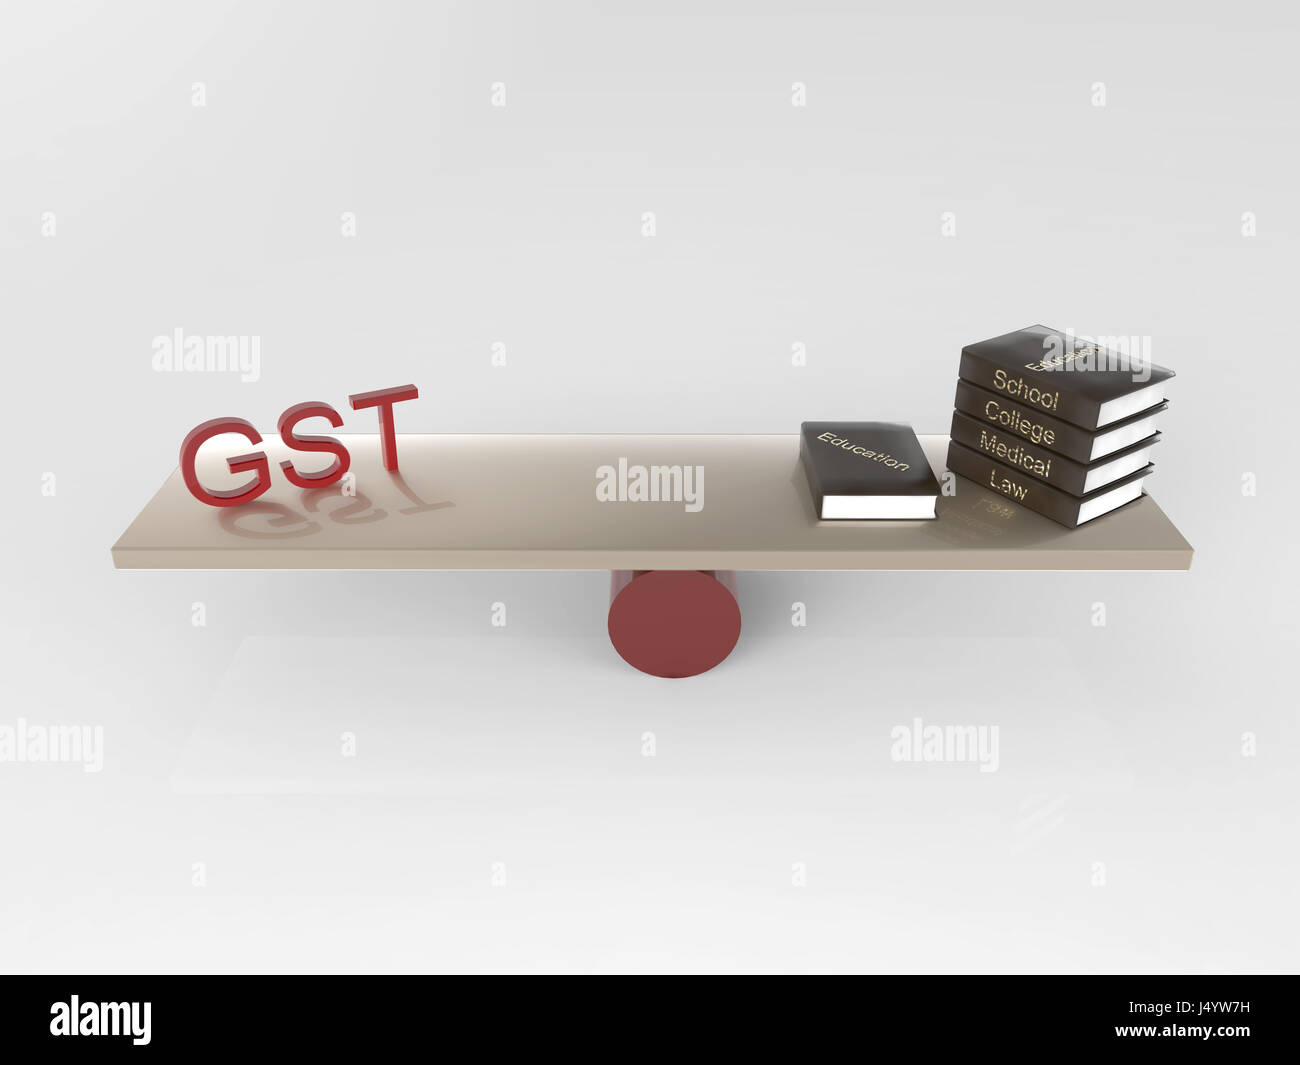 Gst and books, india, asia - Stock Image